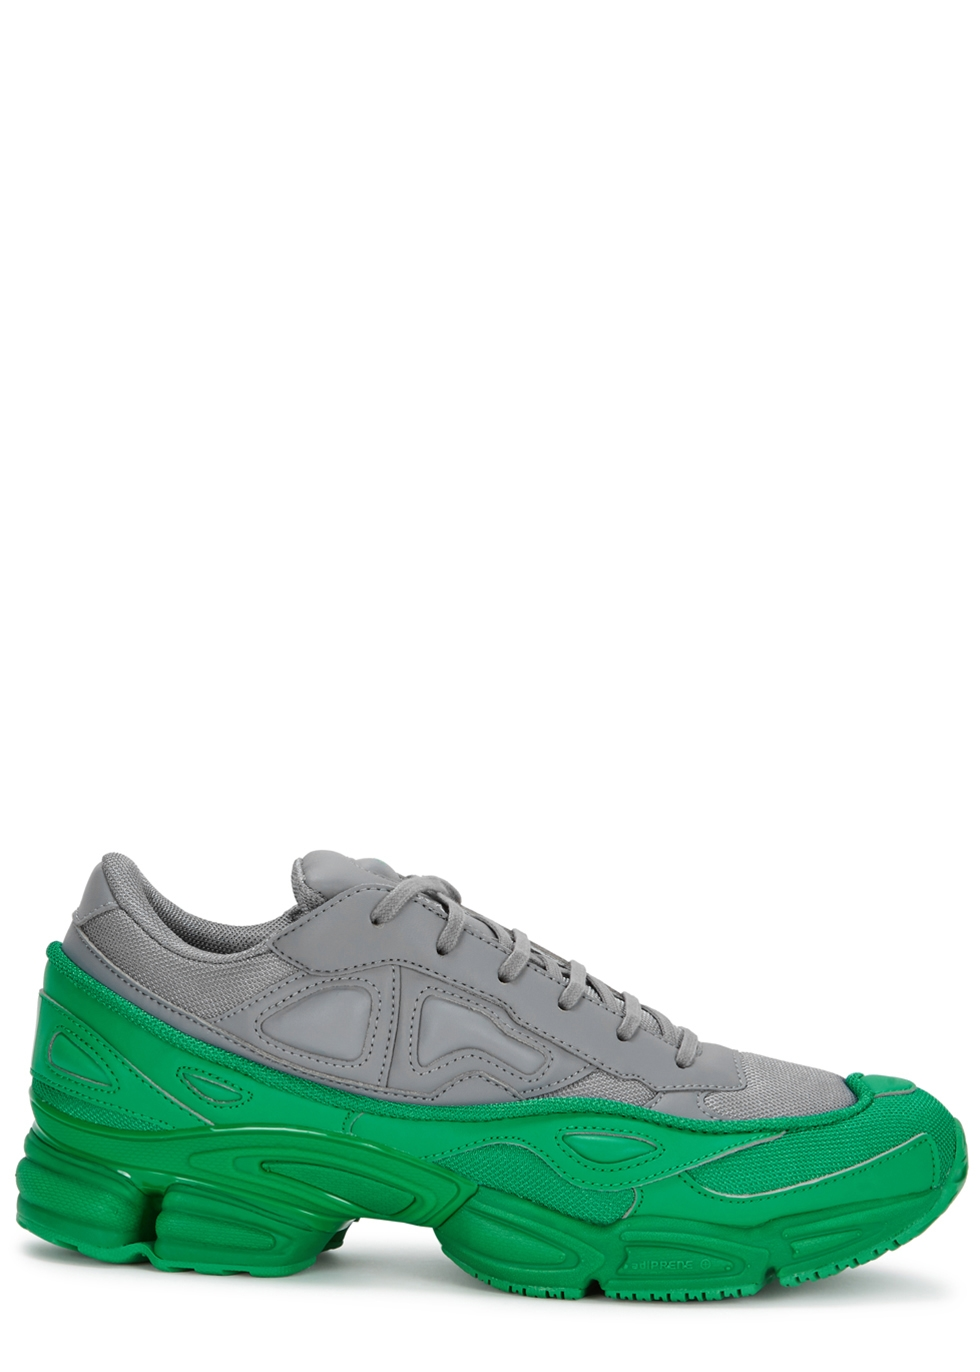 Adidas X Raf Simons Ozweego Colour-Block Leather Trainers in Grey